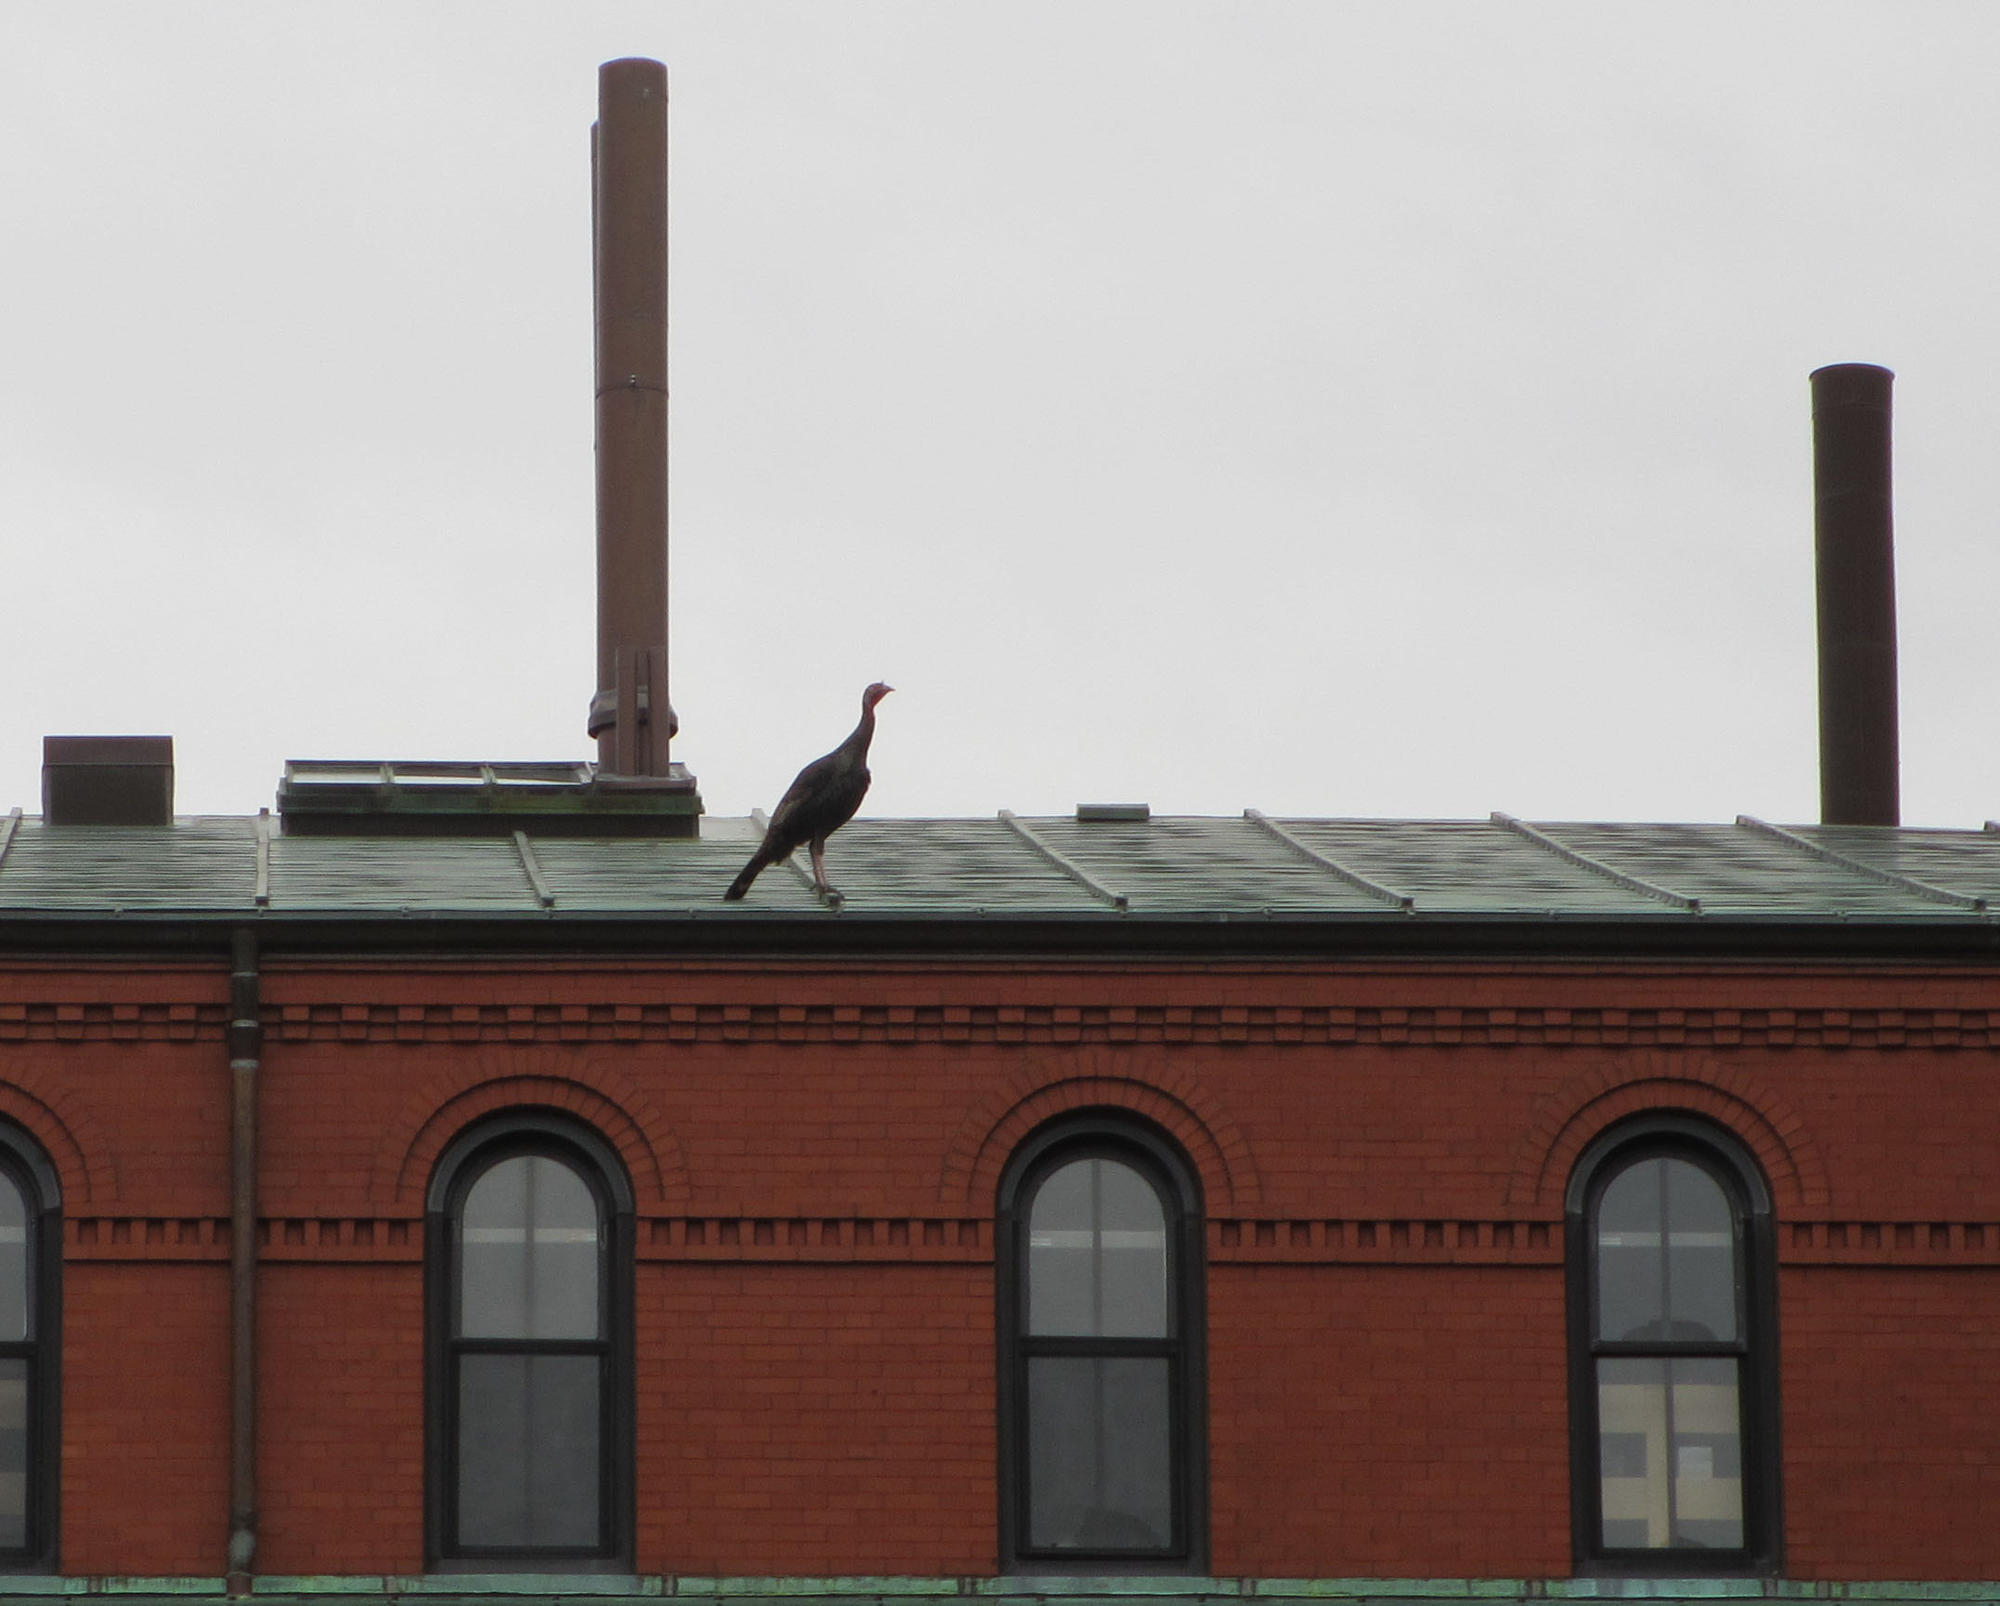 Turkey standing on rooftop of Peabody Museum, Harvard University